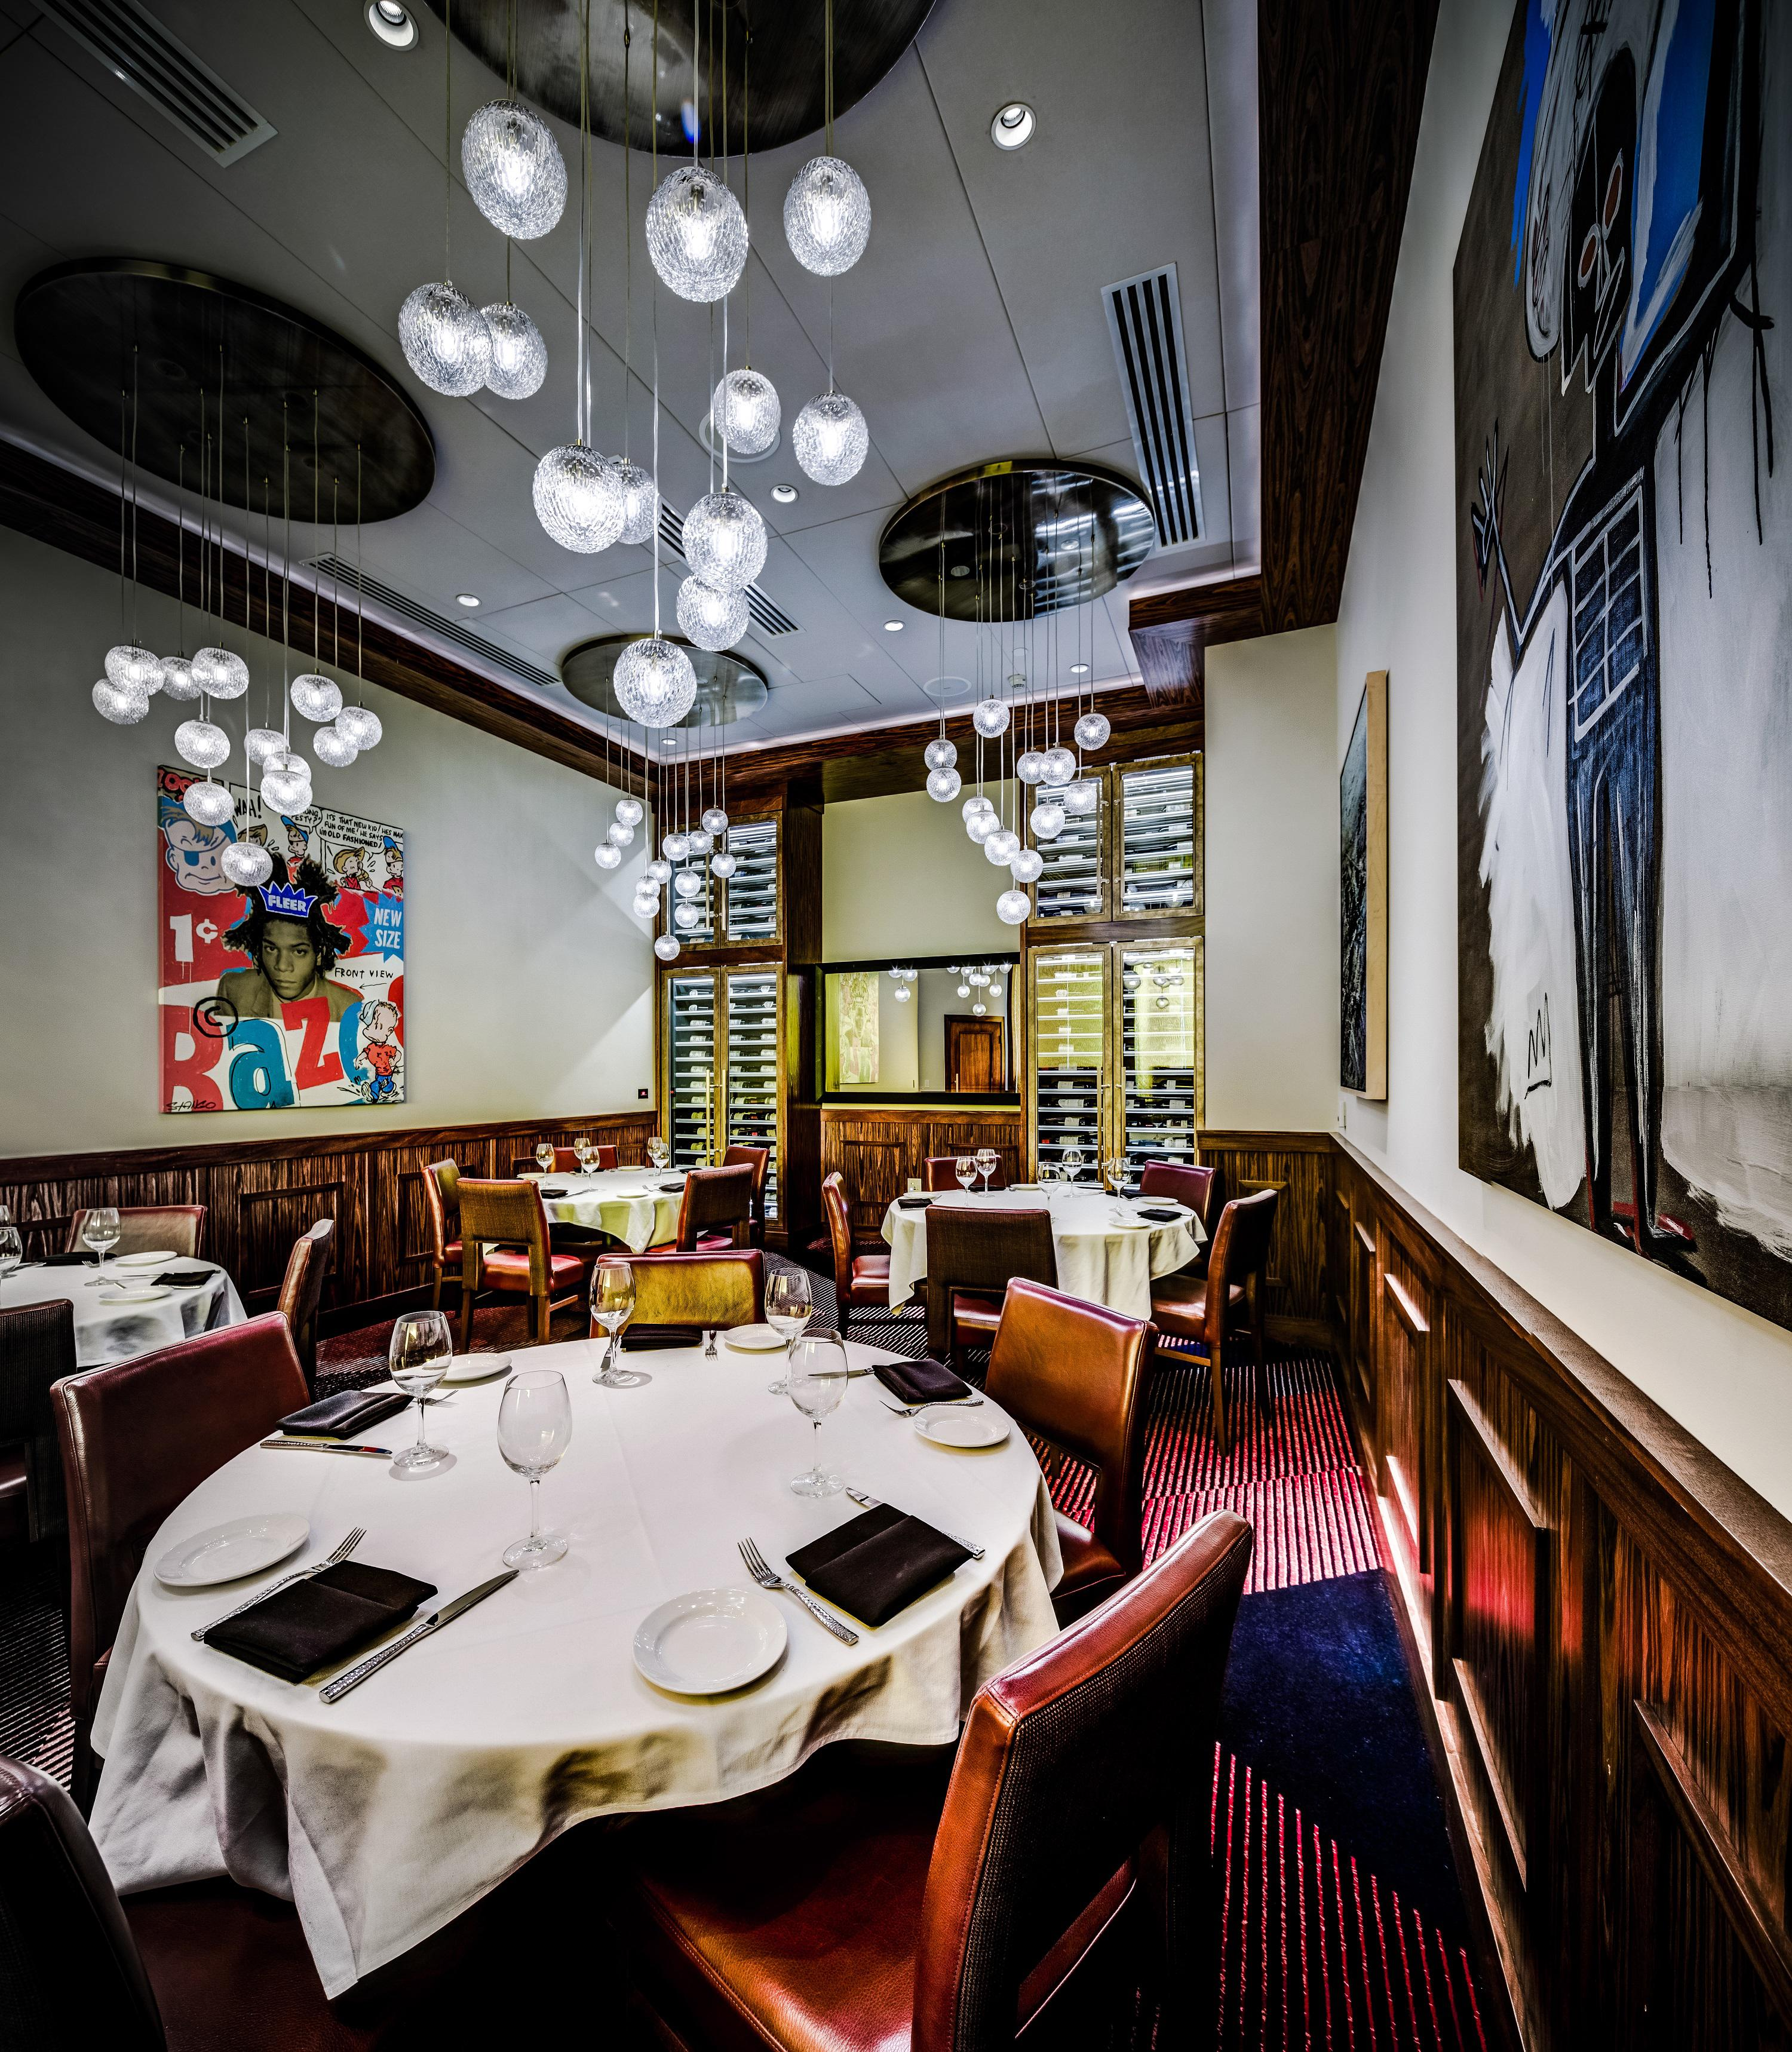 Del Frisco's Double Eagle Steakhouse Los Angeles Century Room private dining room